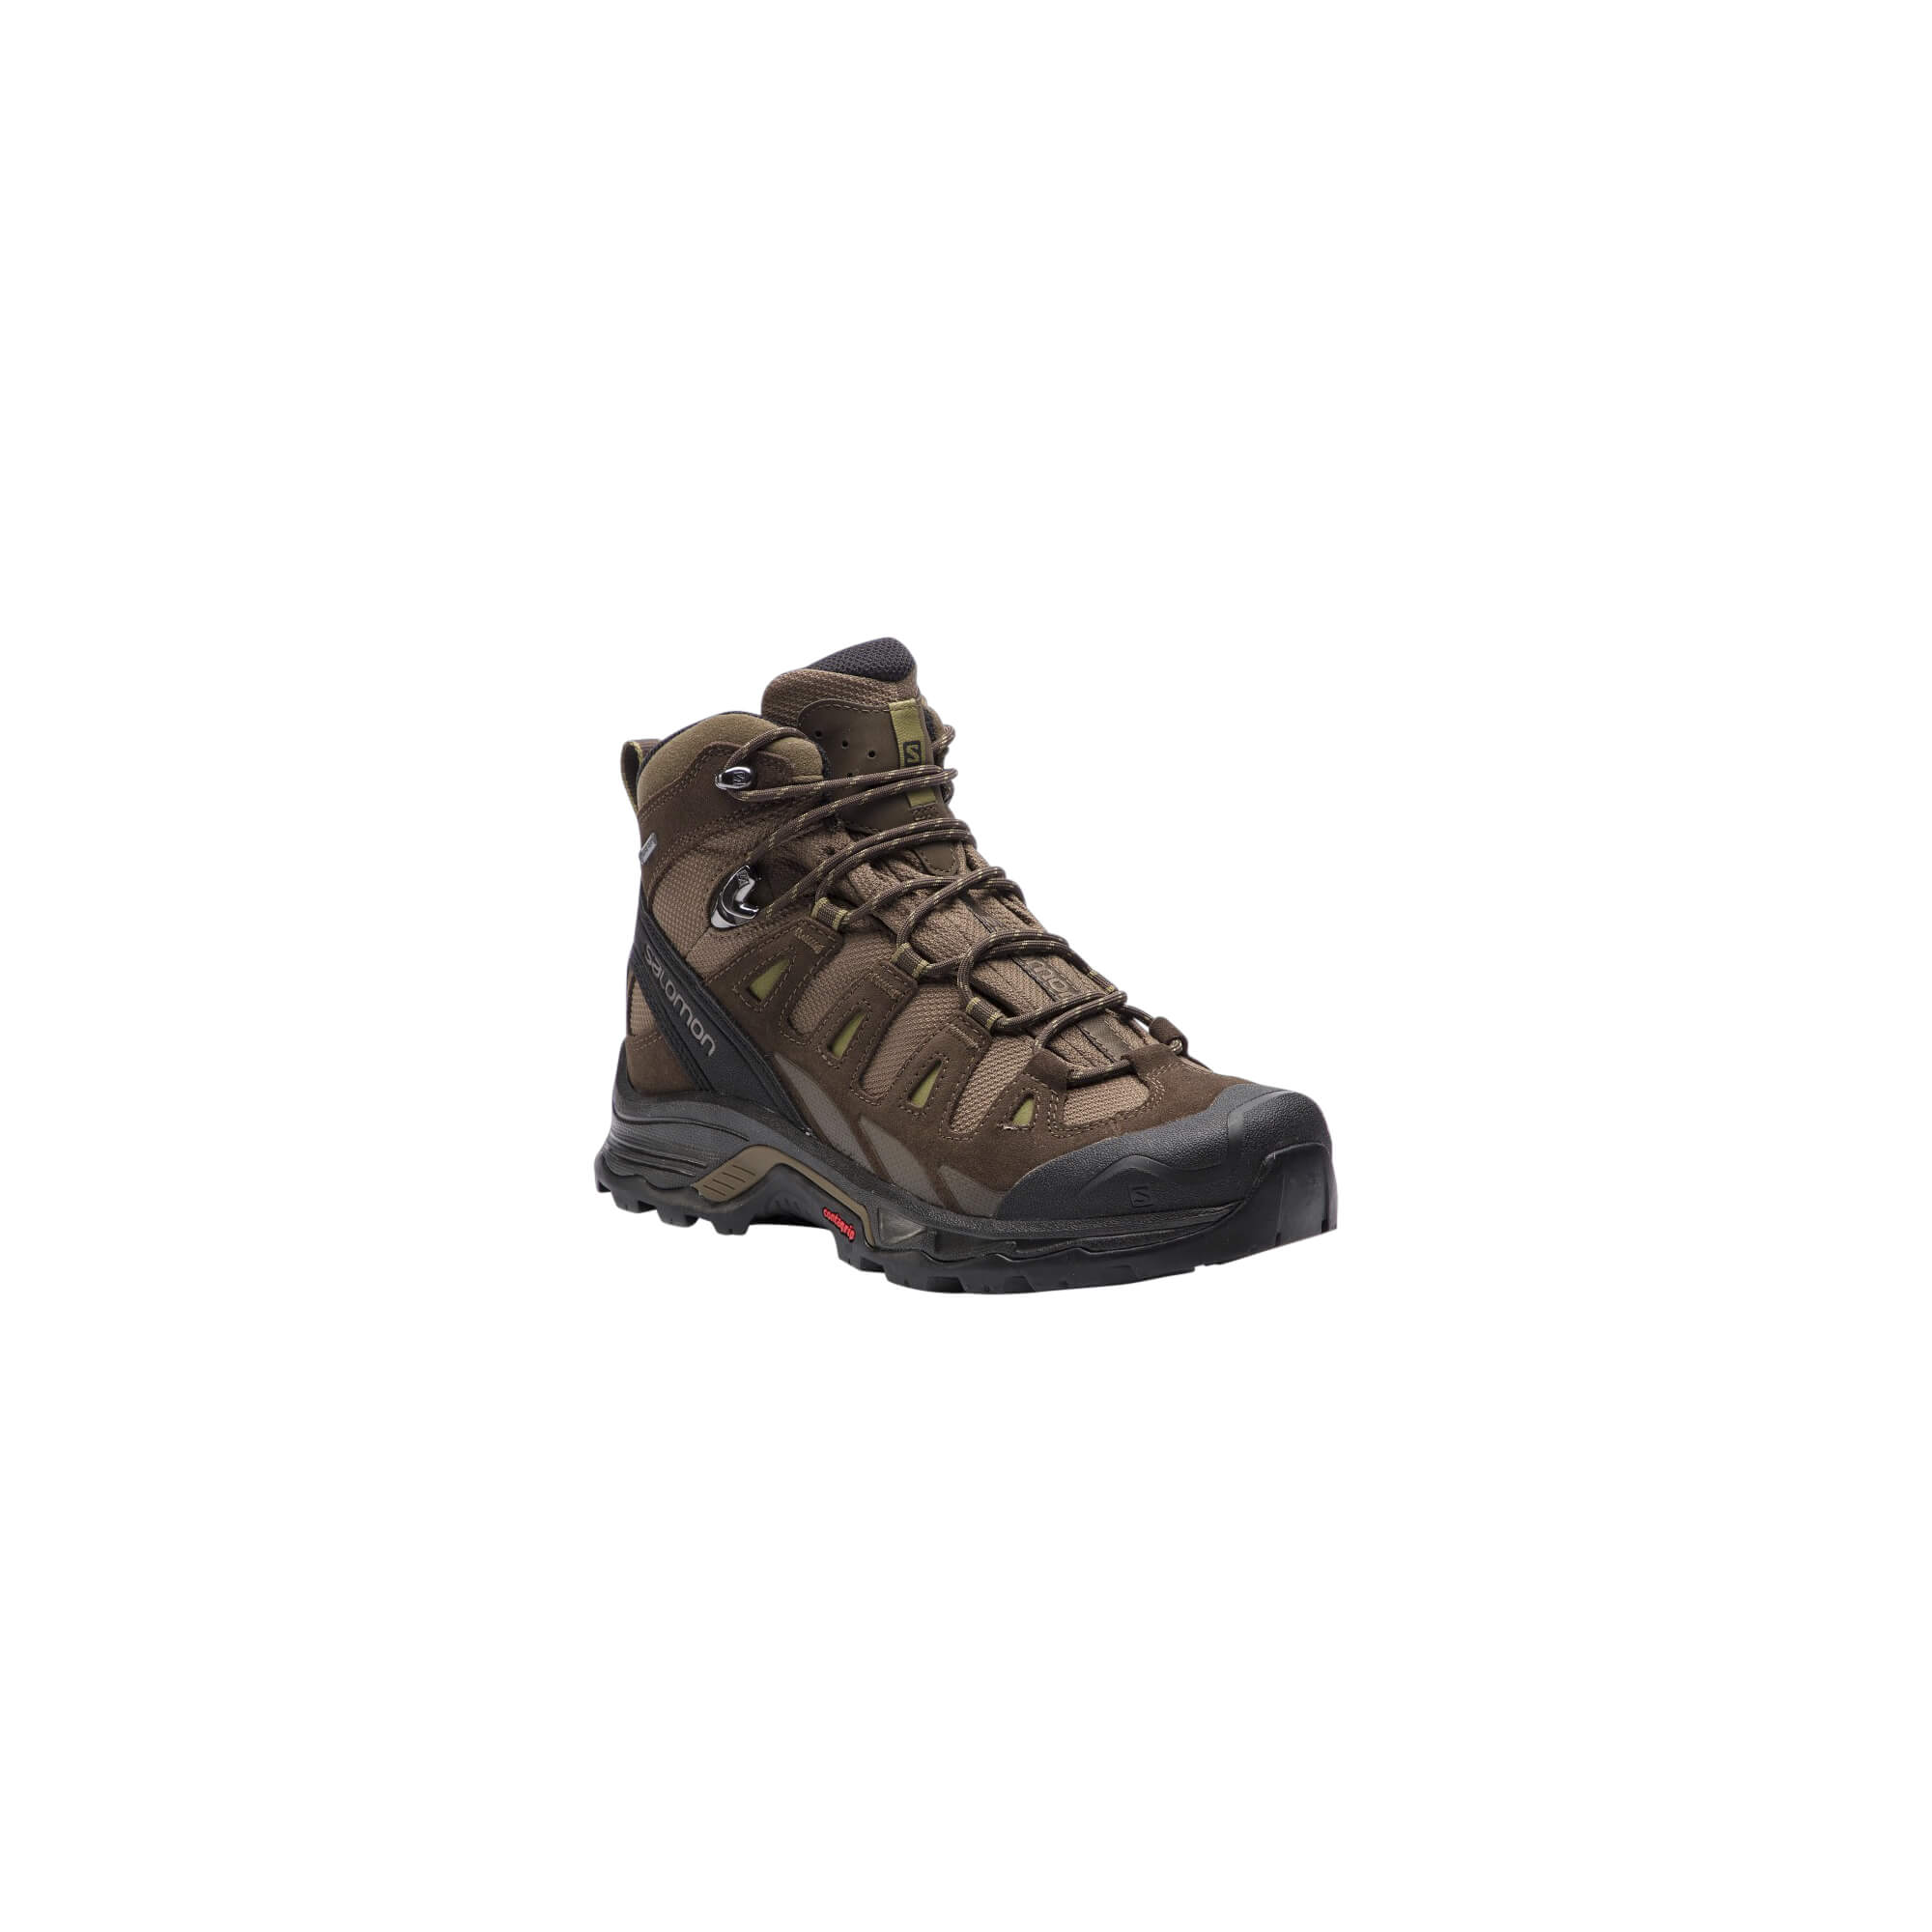 Quest Prime GTX imagine produs